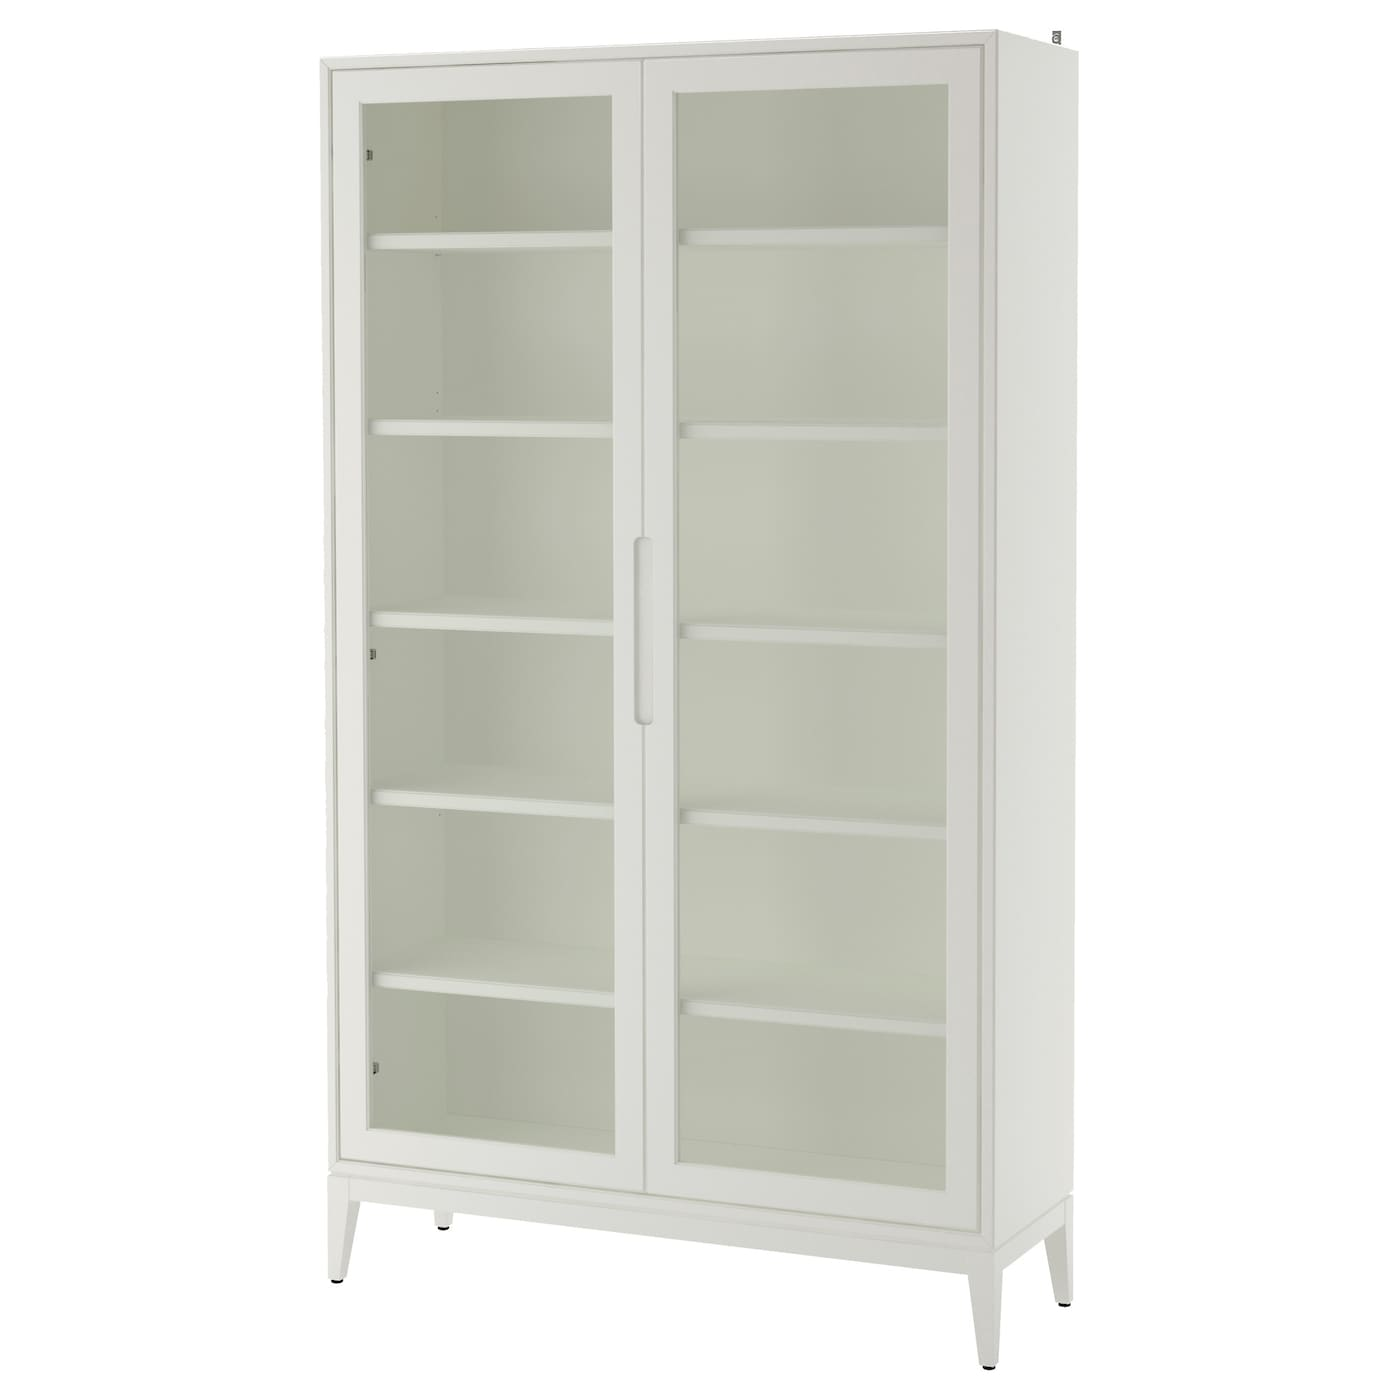 Ikea RegissÖr Glass Door Cabinet Adjule Shelves So You Can Customise Your Storage As